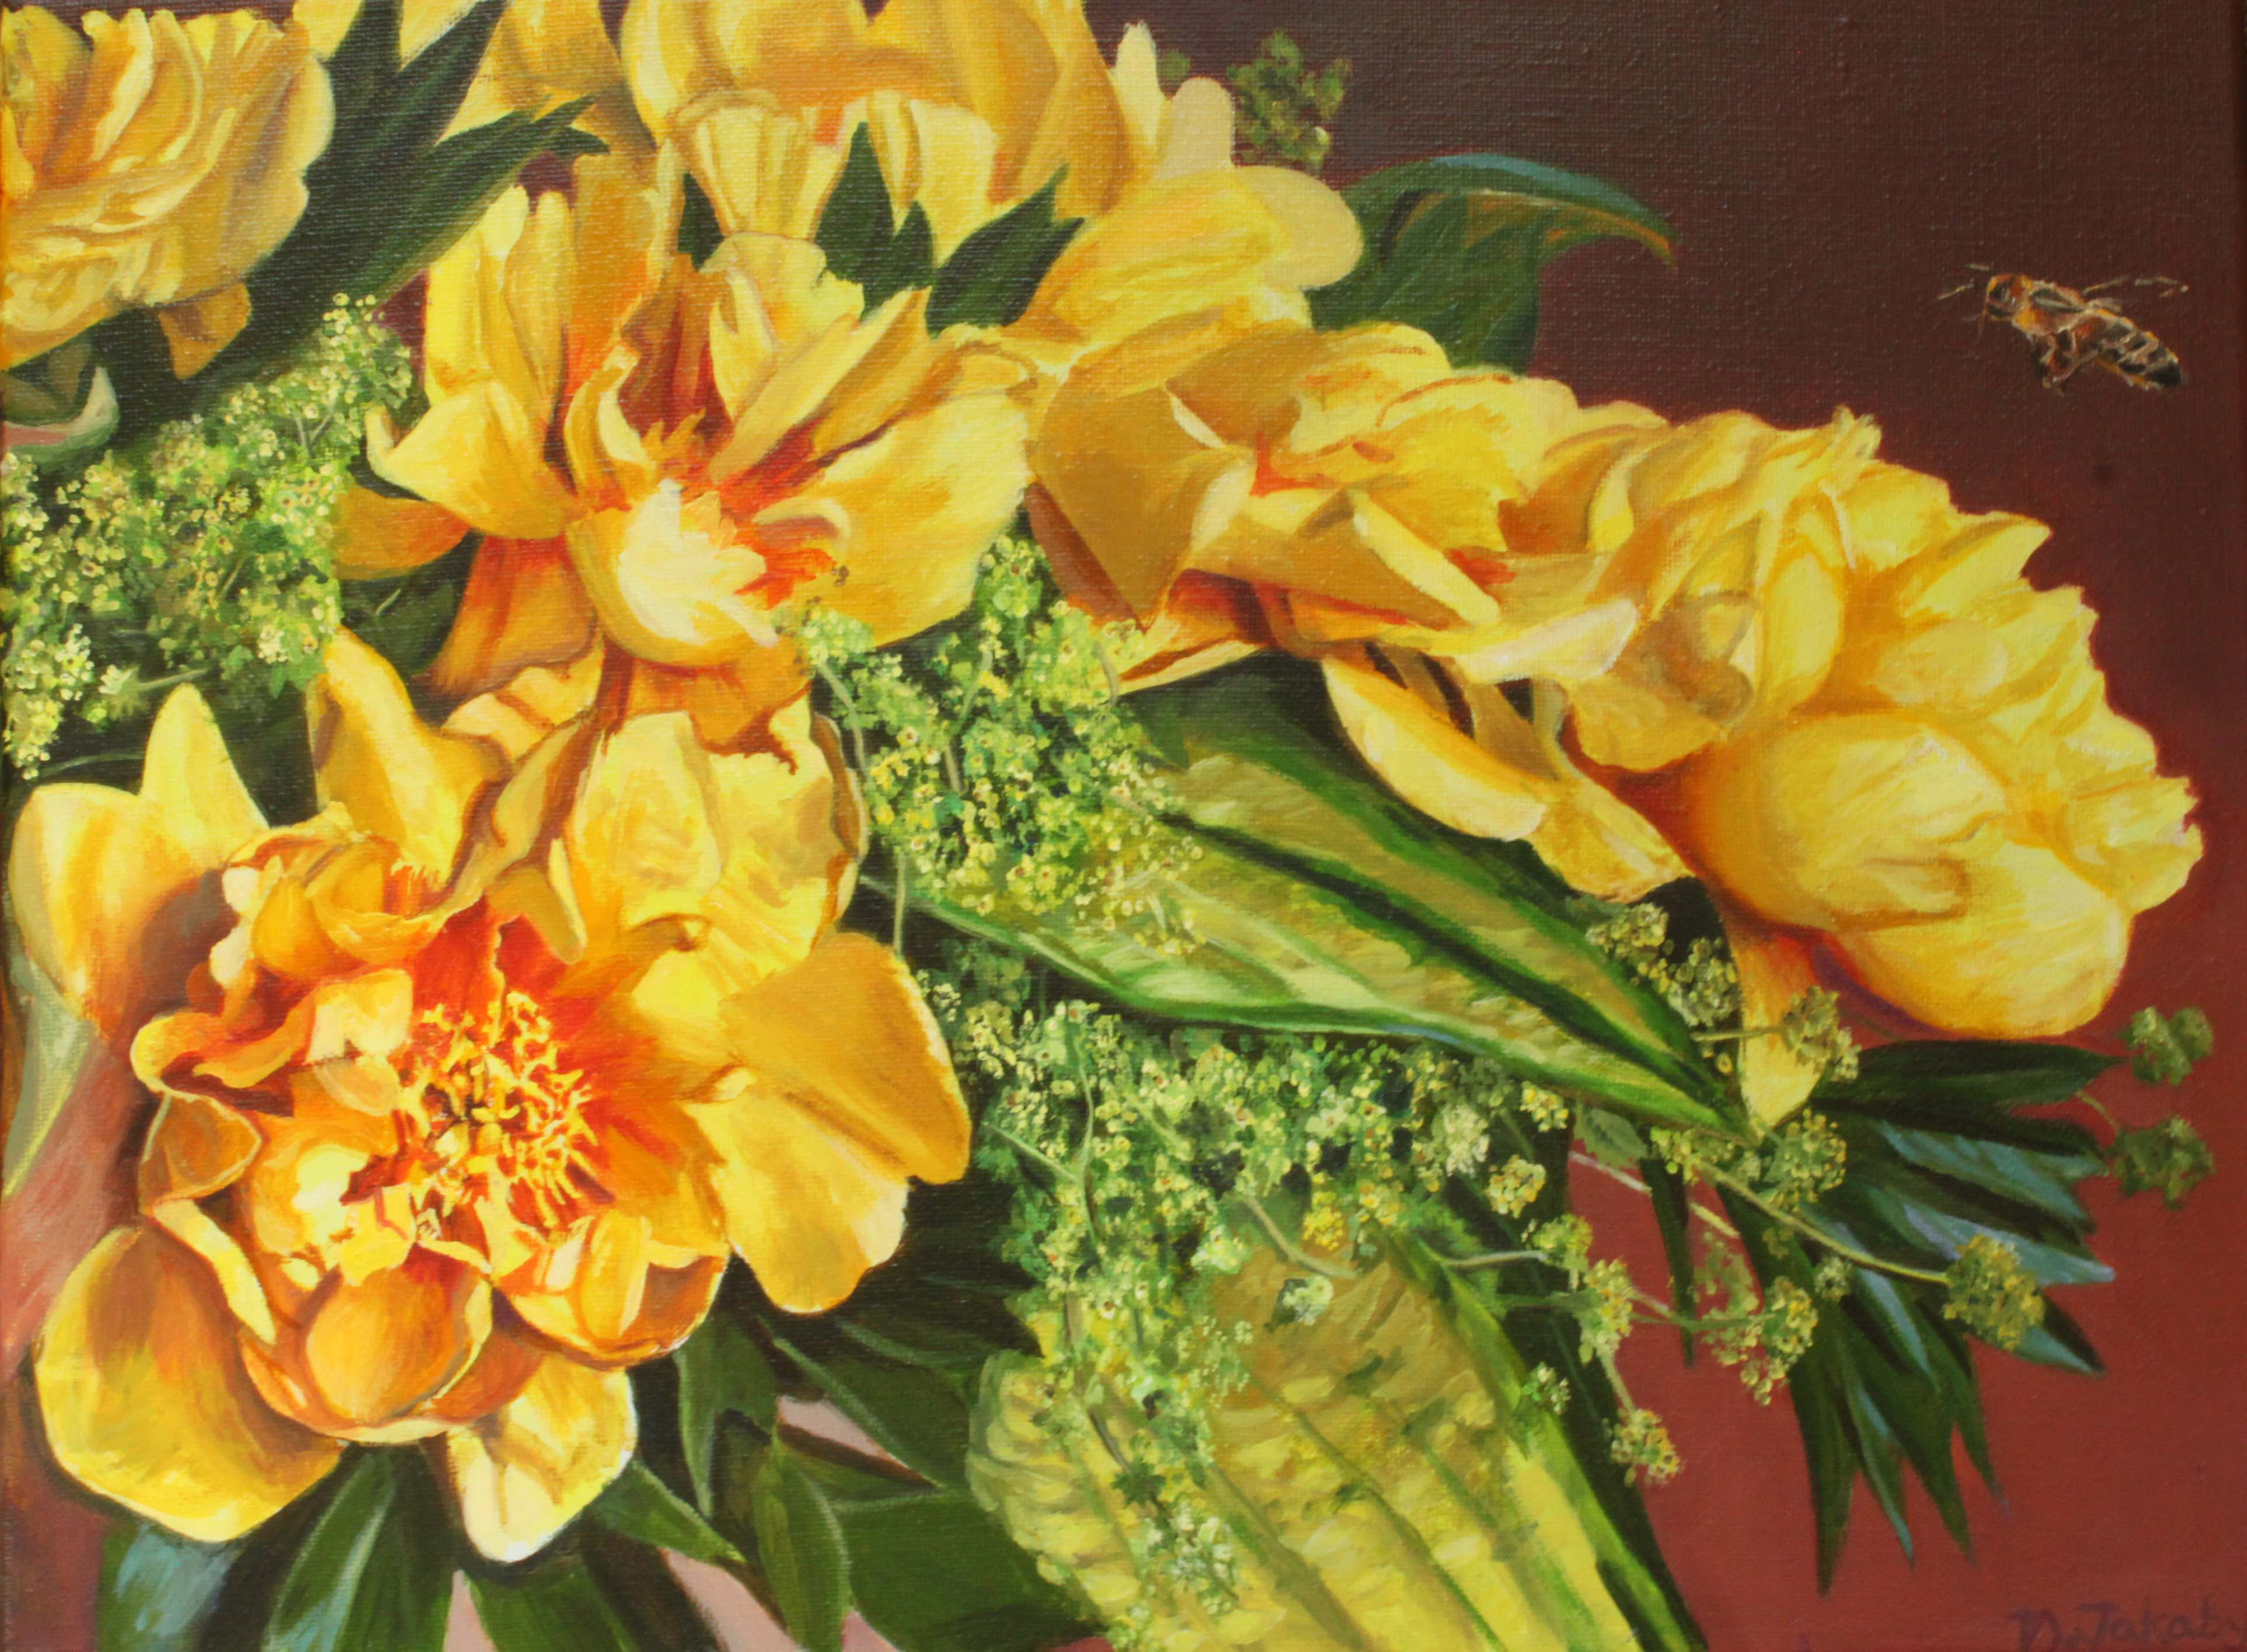 Enjoy The Gallery Of My Latest Paintings At Right